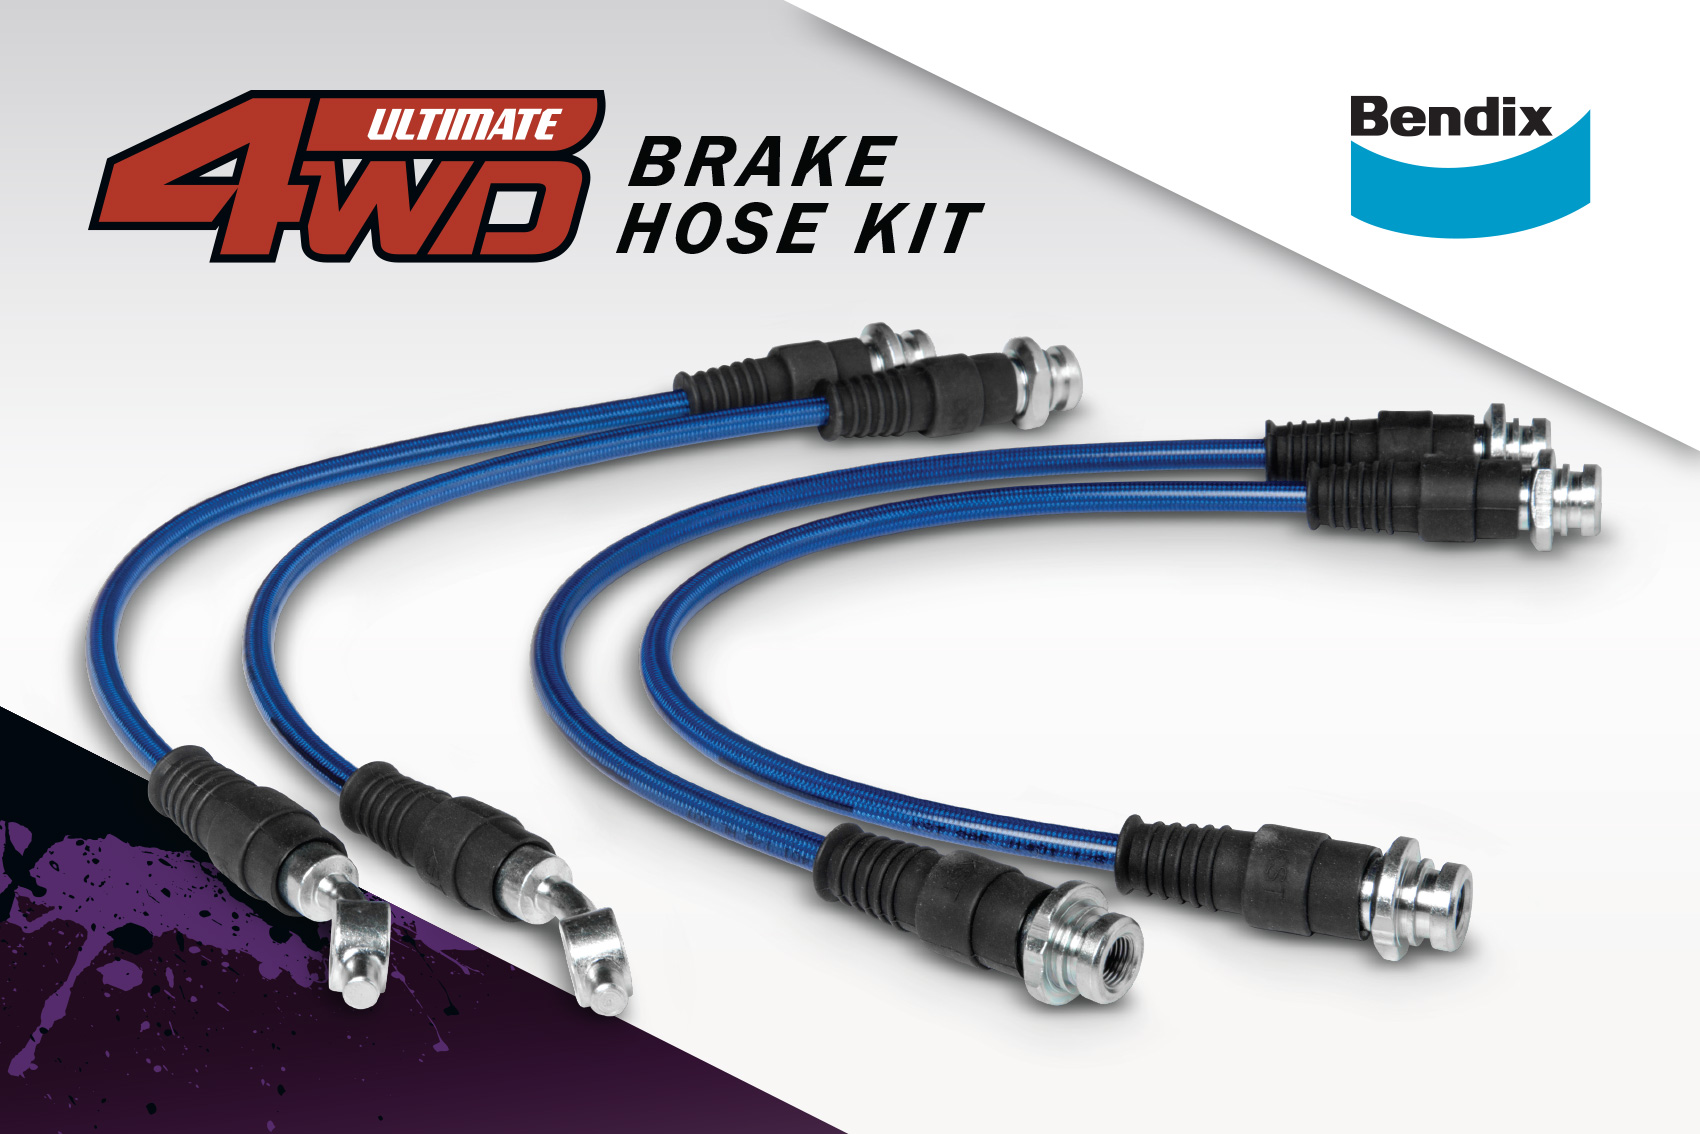 Bendix 4wd Braided Brake Hose